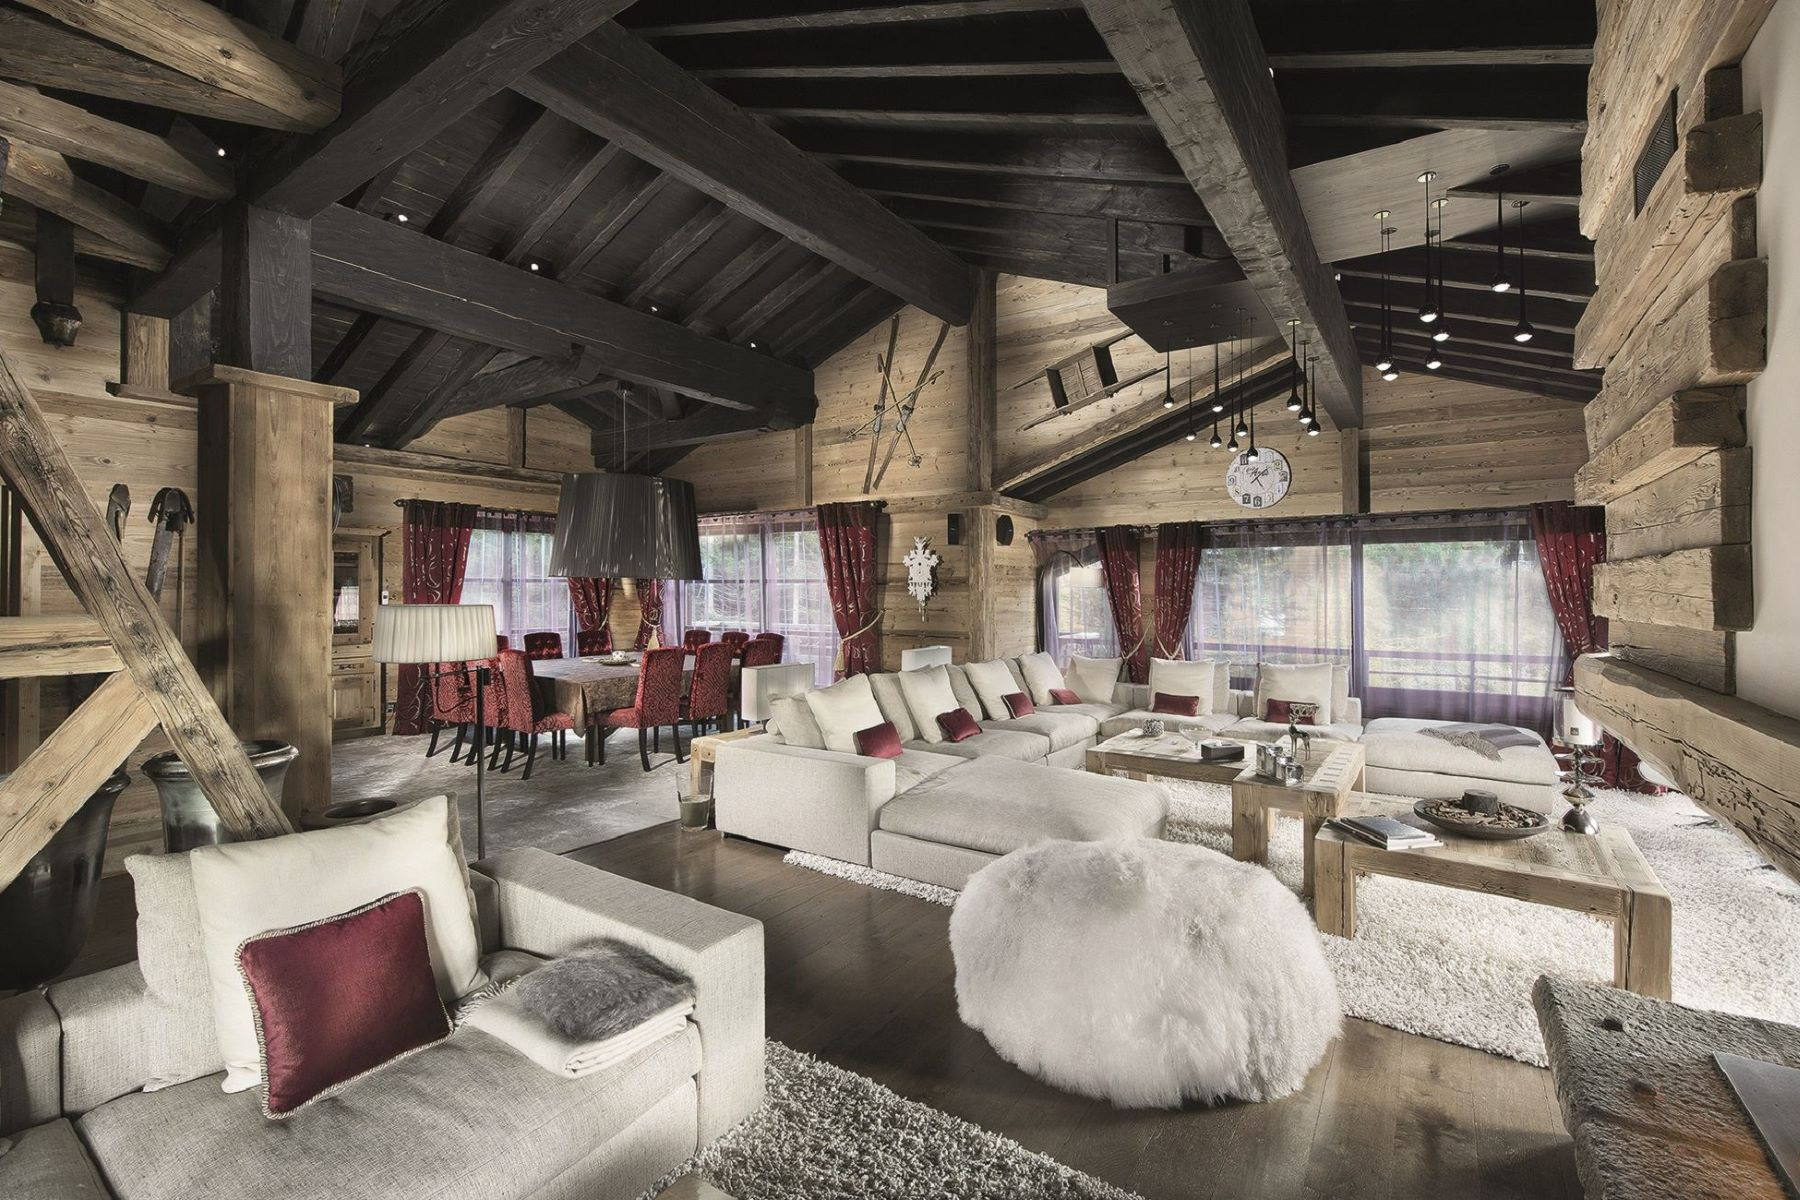 Single Family Home for Rent at Luxury chalet for rent Black Pearl Courchevel, Rhone-Alpes, 73120 France